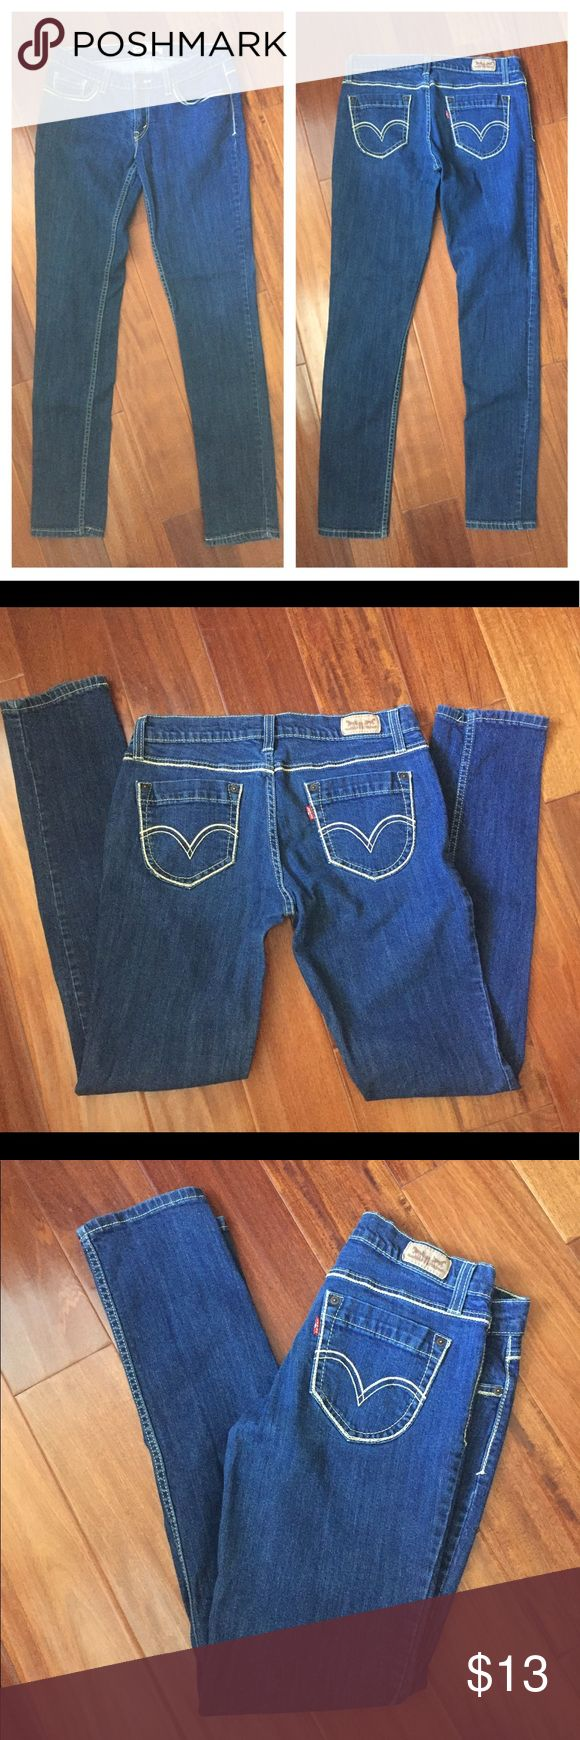 """Levi's, Skinny Jeans 👖 In perfect condition. No damage. Style- 524Too superlow. Waist 32"""" inseam 32"""". PRICE IS FIRM, you can bundle for extra savings ty levis Jeans Skinny"""